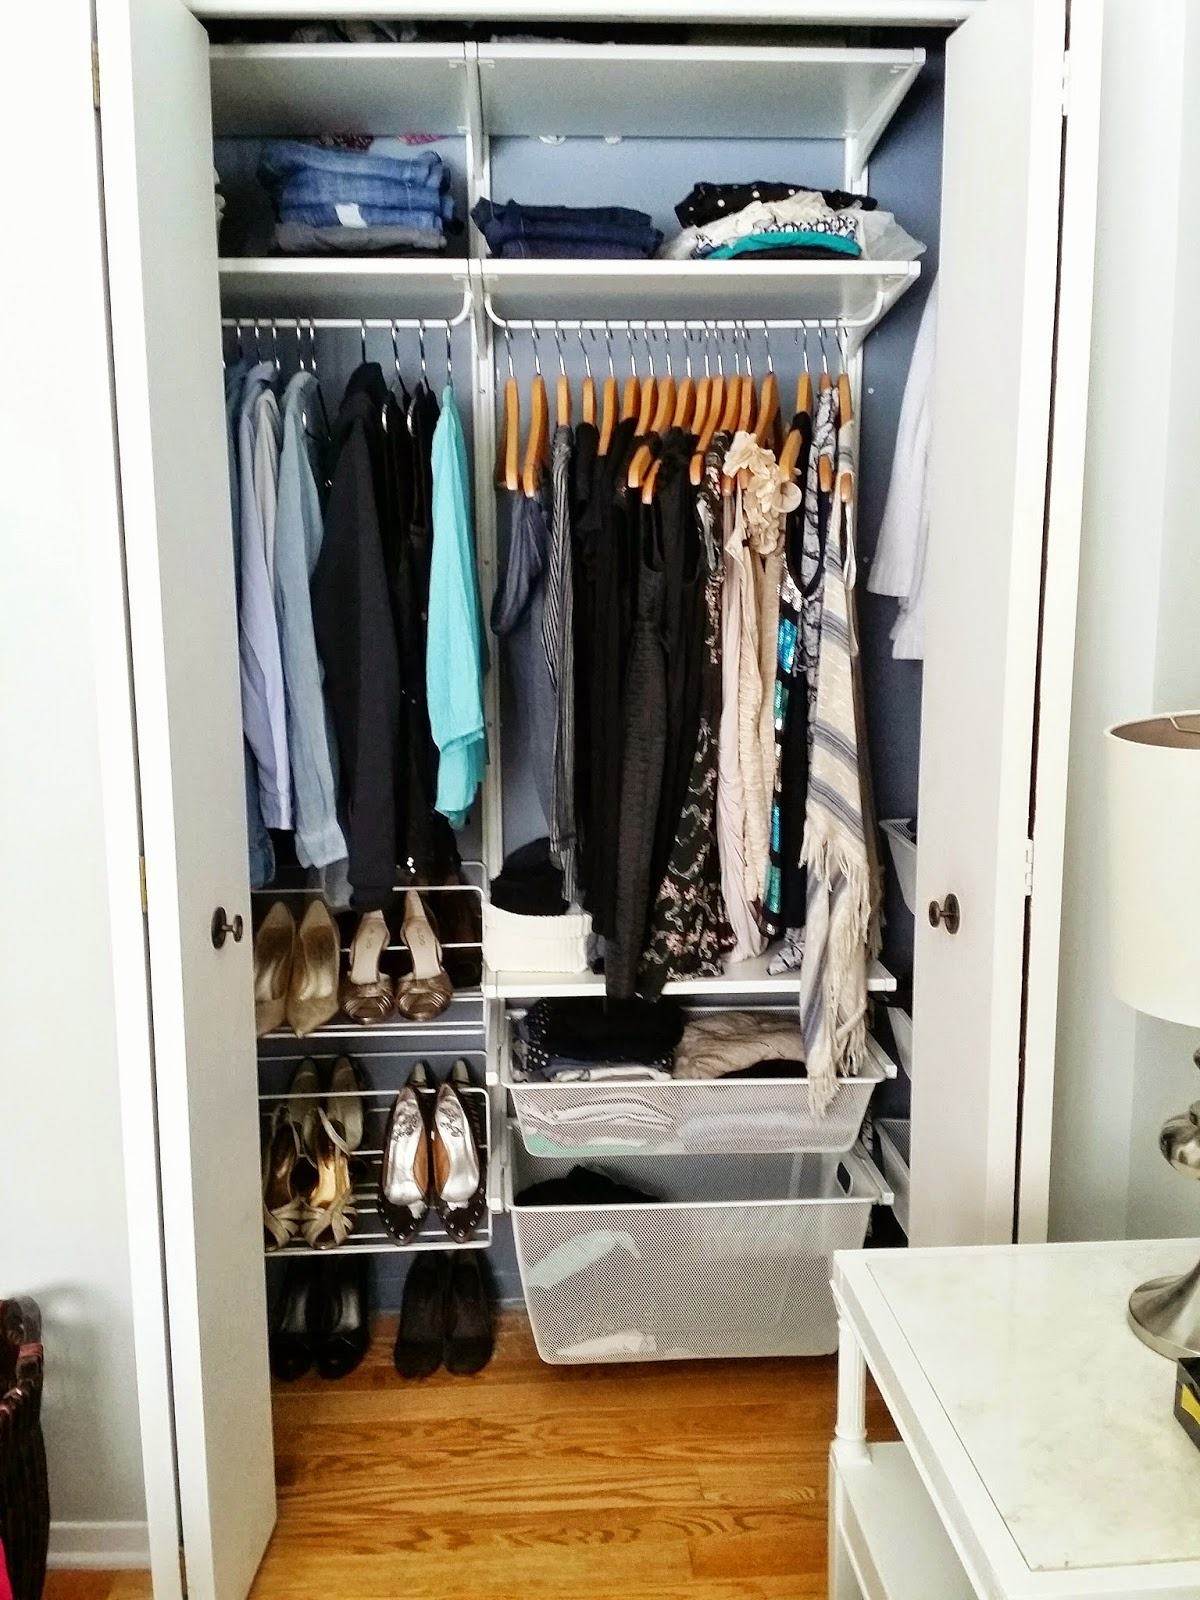 Genial Here Is A Link To The Algot System For Those Whou0027d Like A Super Nice Closet  For Cheap! Just Make Sure To Measure 60 Cm From Centre Rail To Centre Rail   This ...